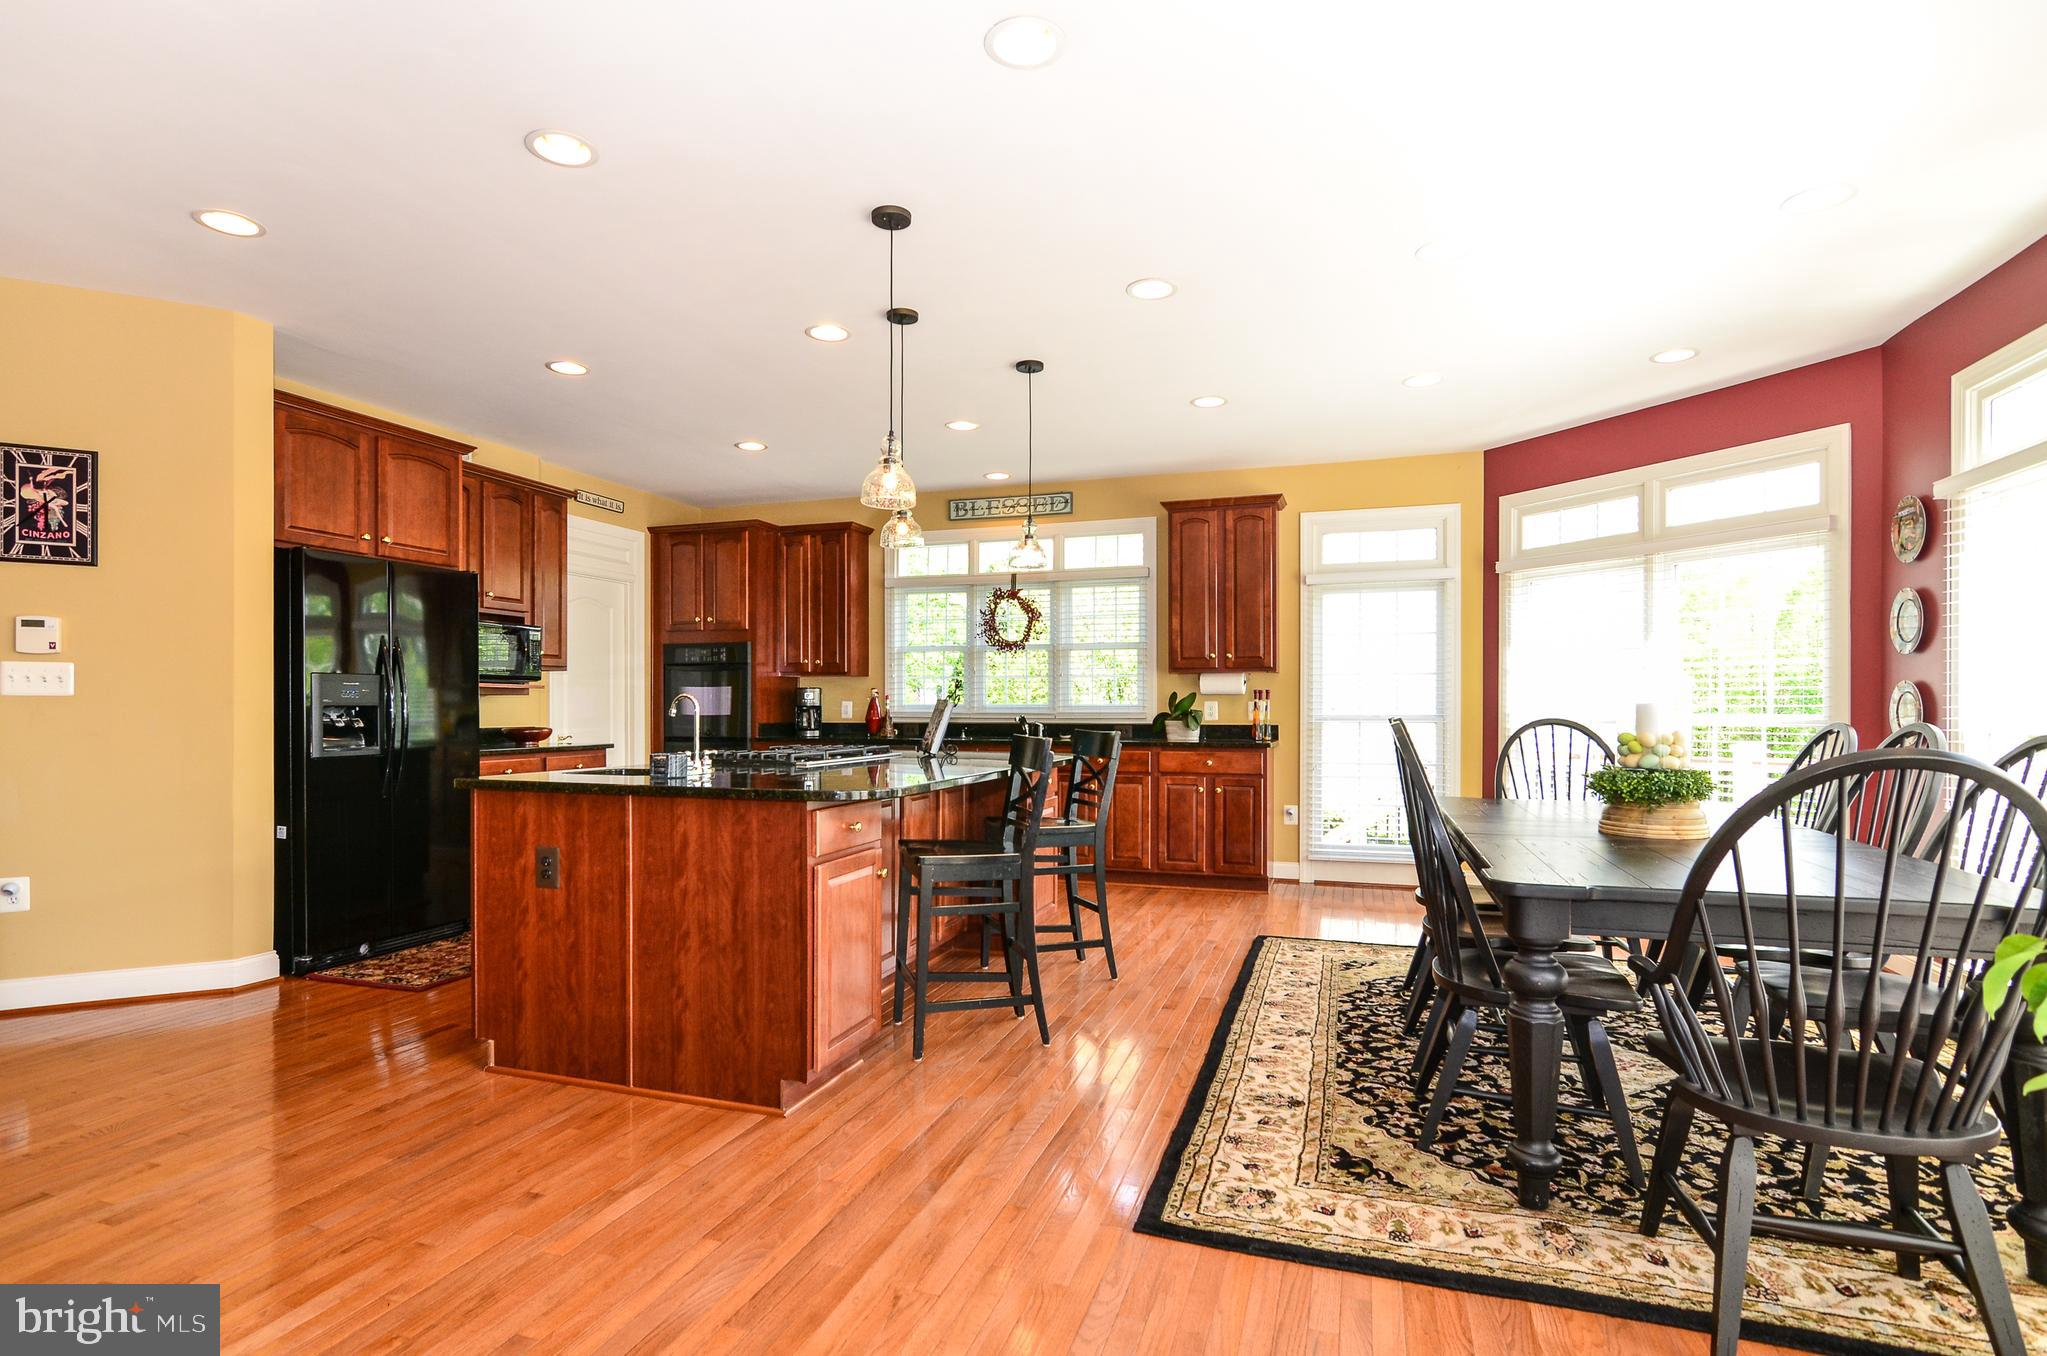 24202 HEATHER FIELD COURT, Aldie, 20105 | The Dave and Dave Team